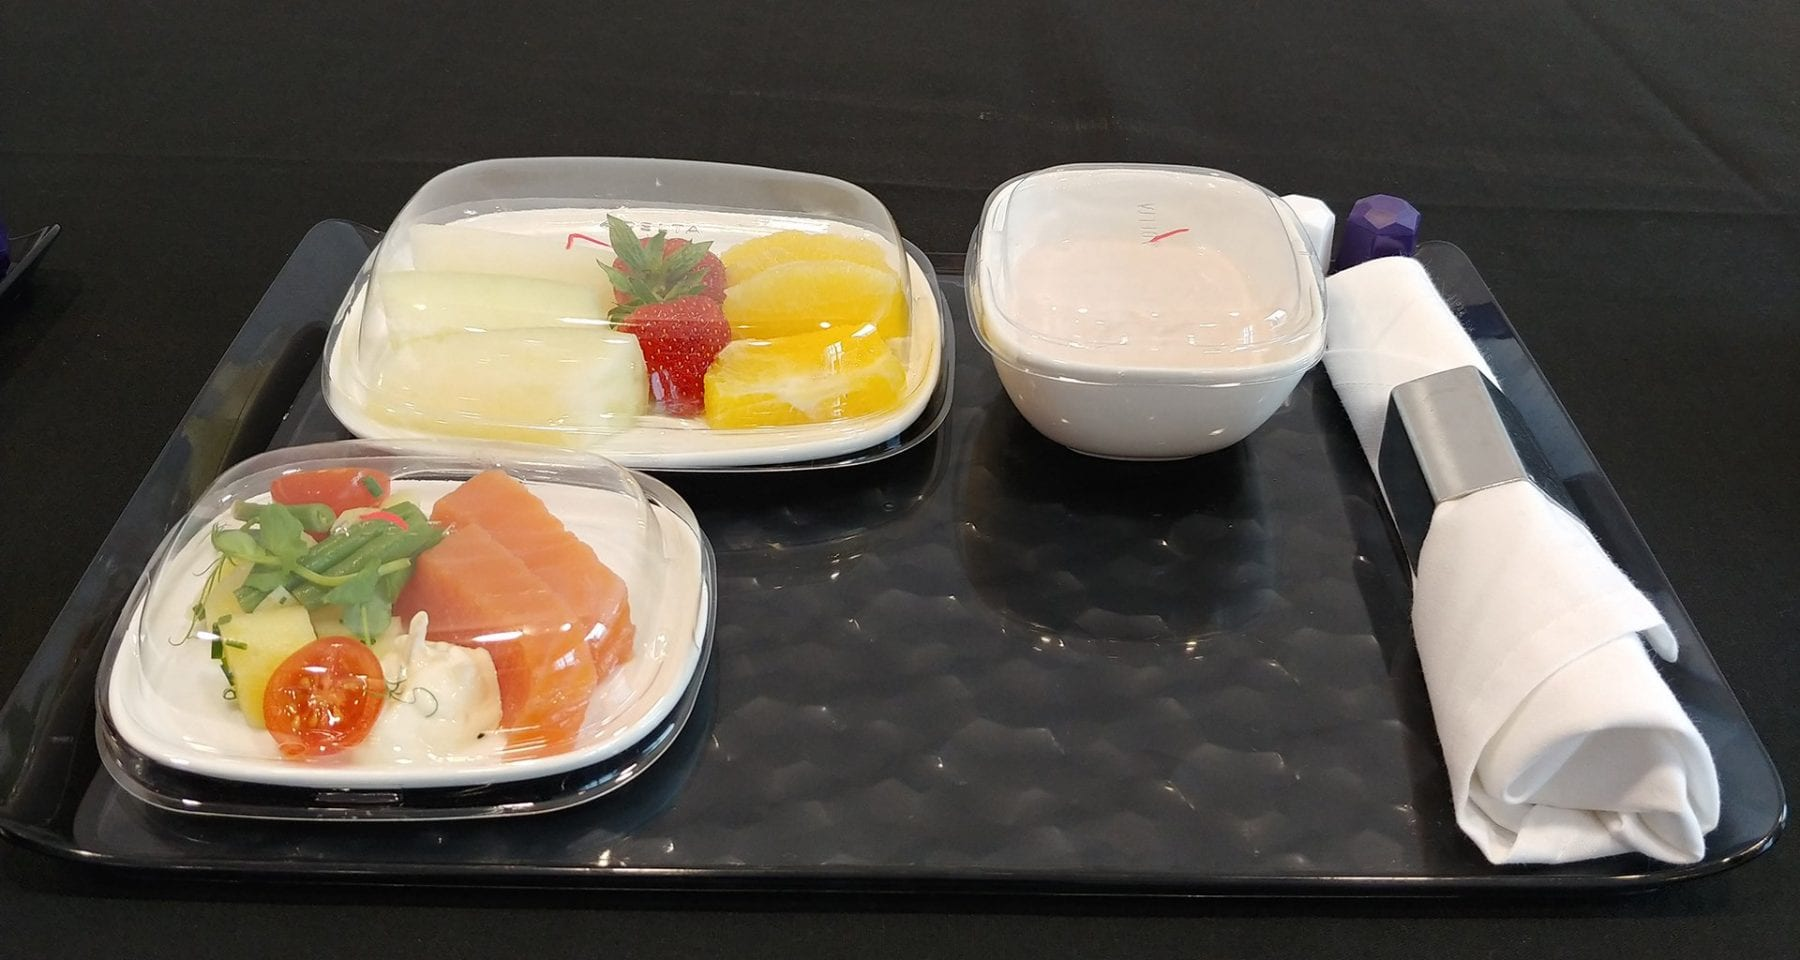 Delta Airlines business class meal tray